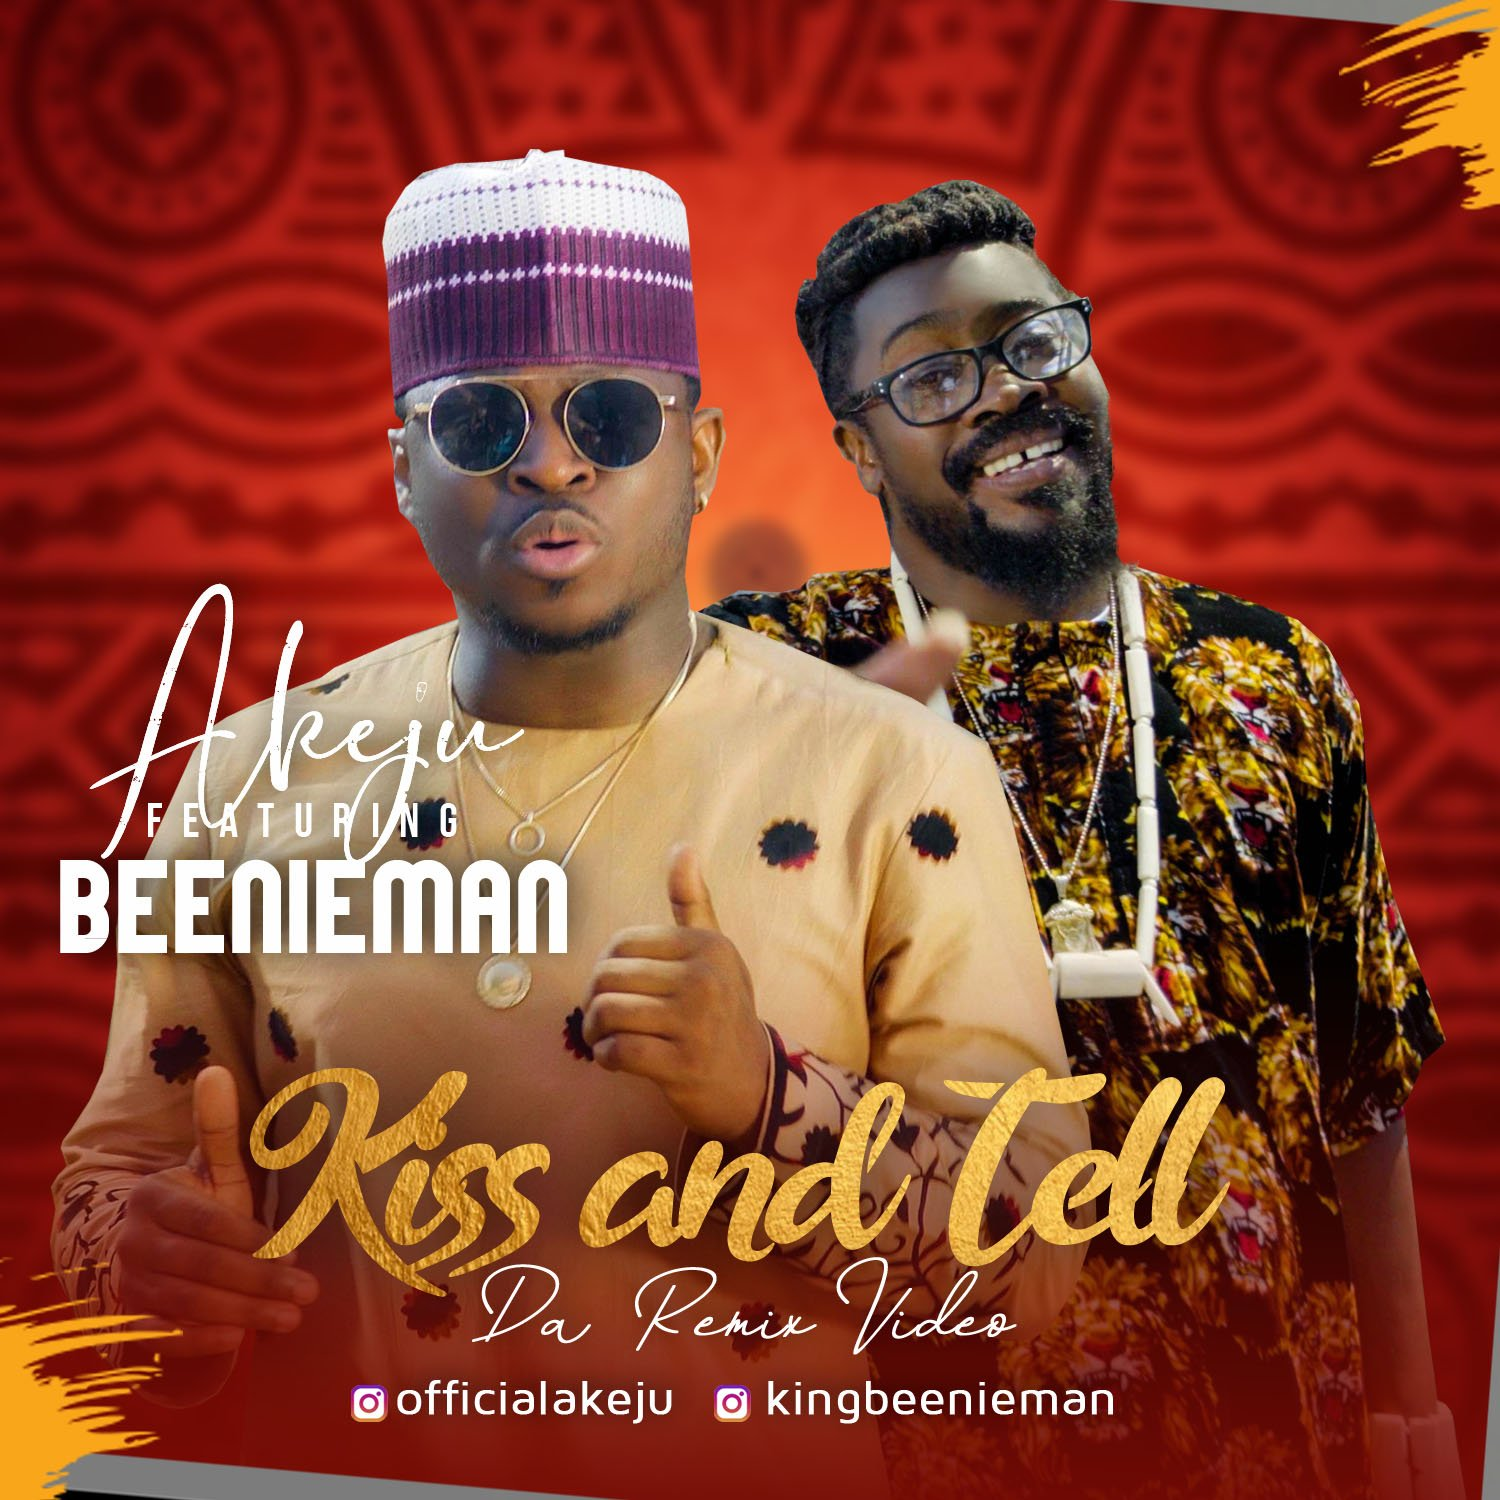 Akeju and reggae dancehall king Beenie Man release 'Kiss and Tell' remix music video